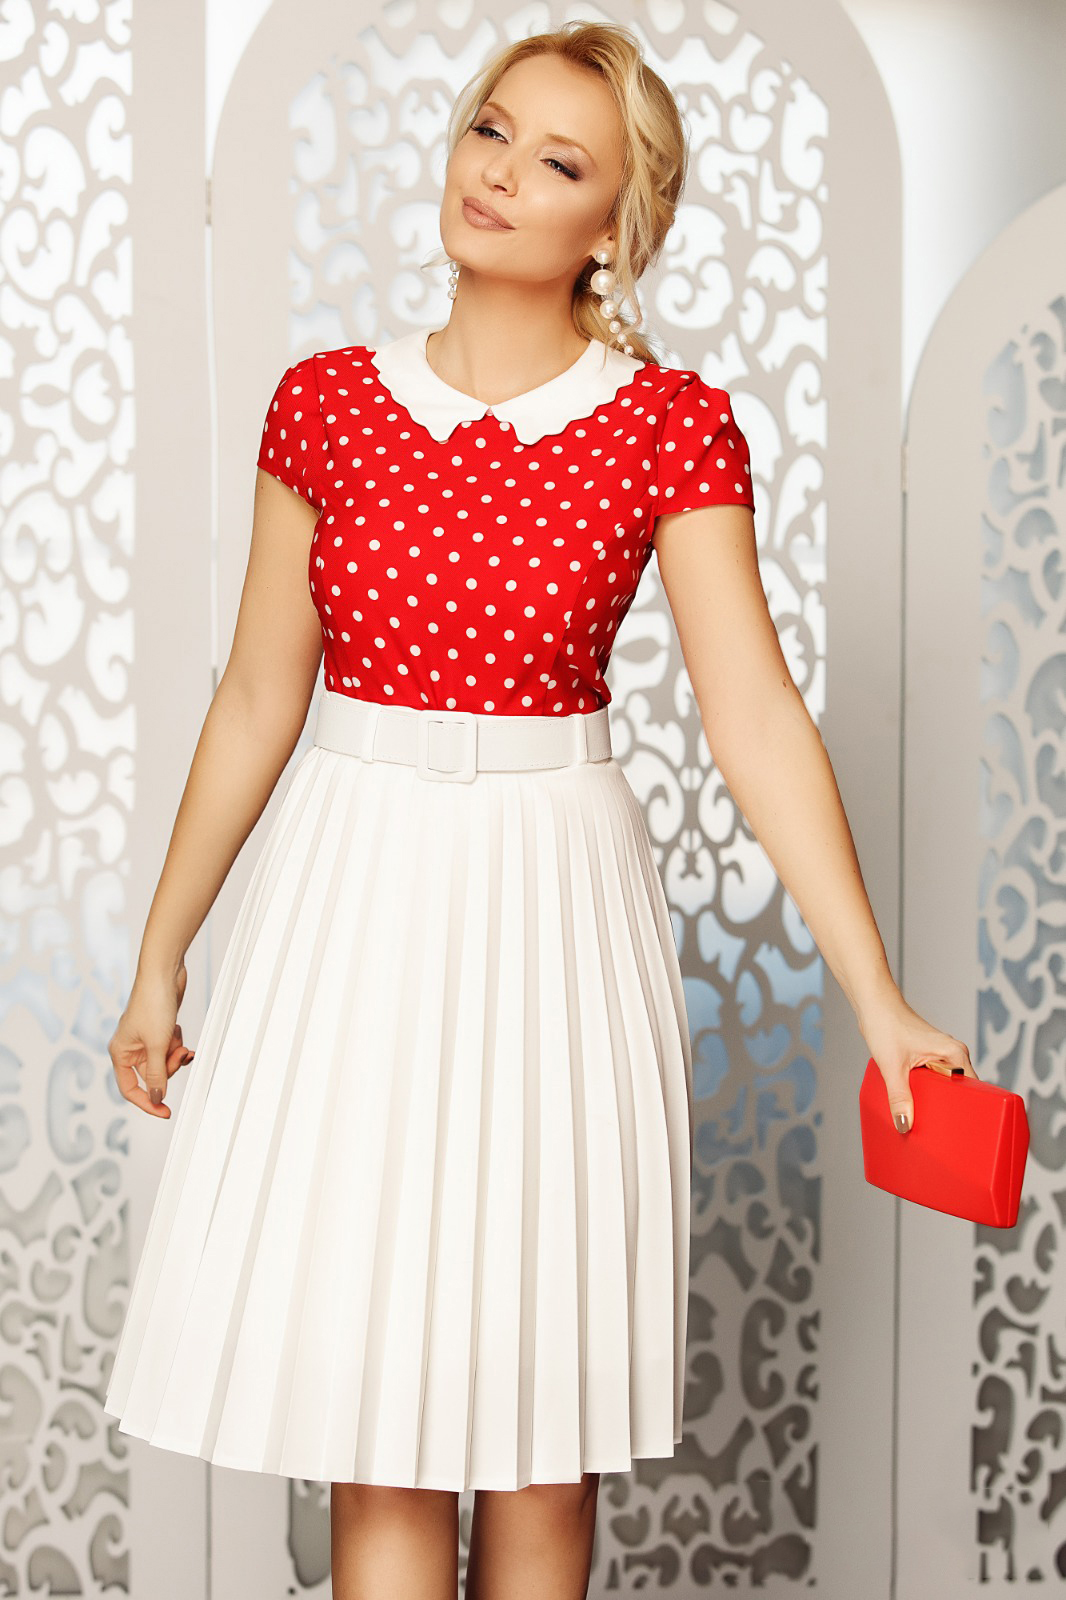 Fofy white elegant folded up cloche skirt high waisted accessorized with belt slightly elastic fabric